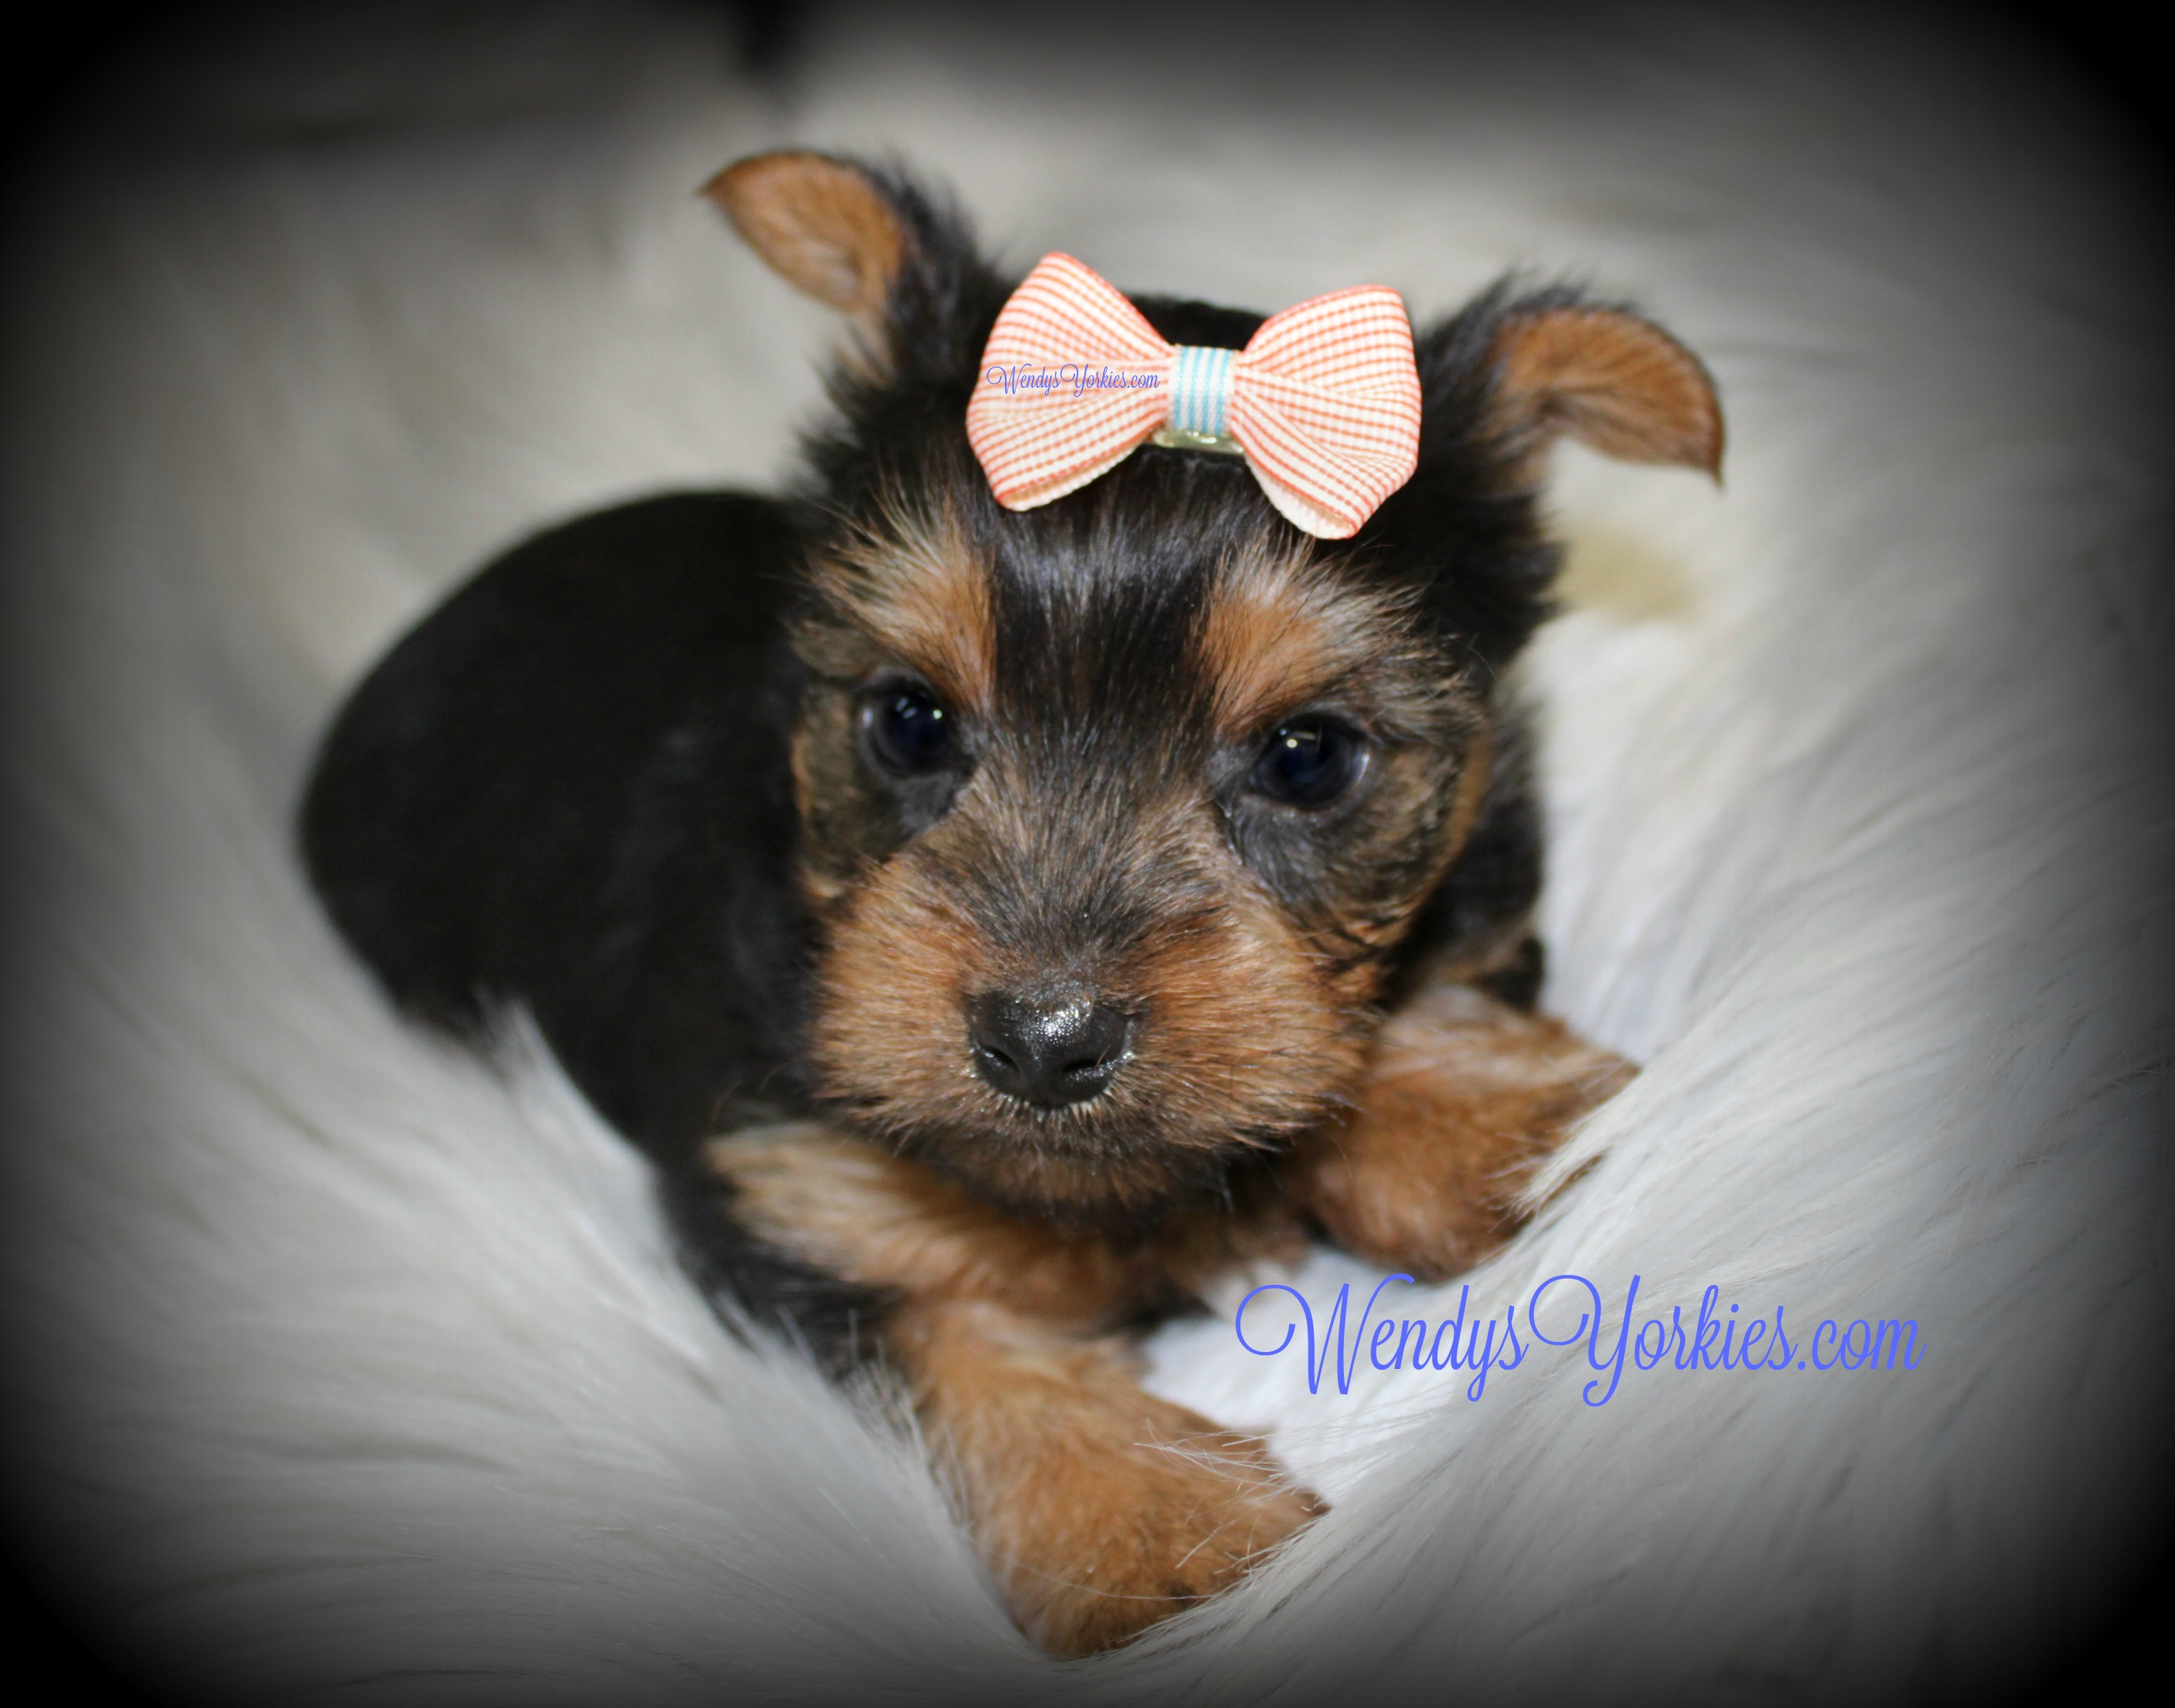 Teacup Yorkie puppy for sale, WendysYorkies.com, TG m1